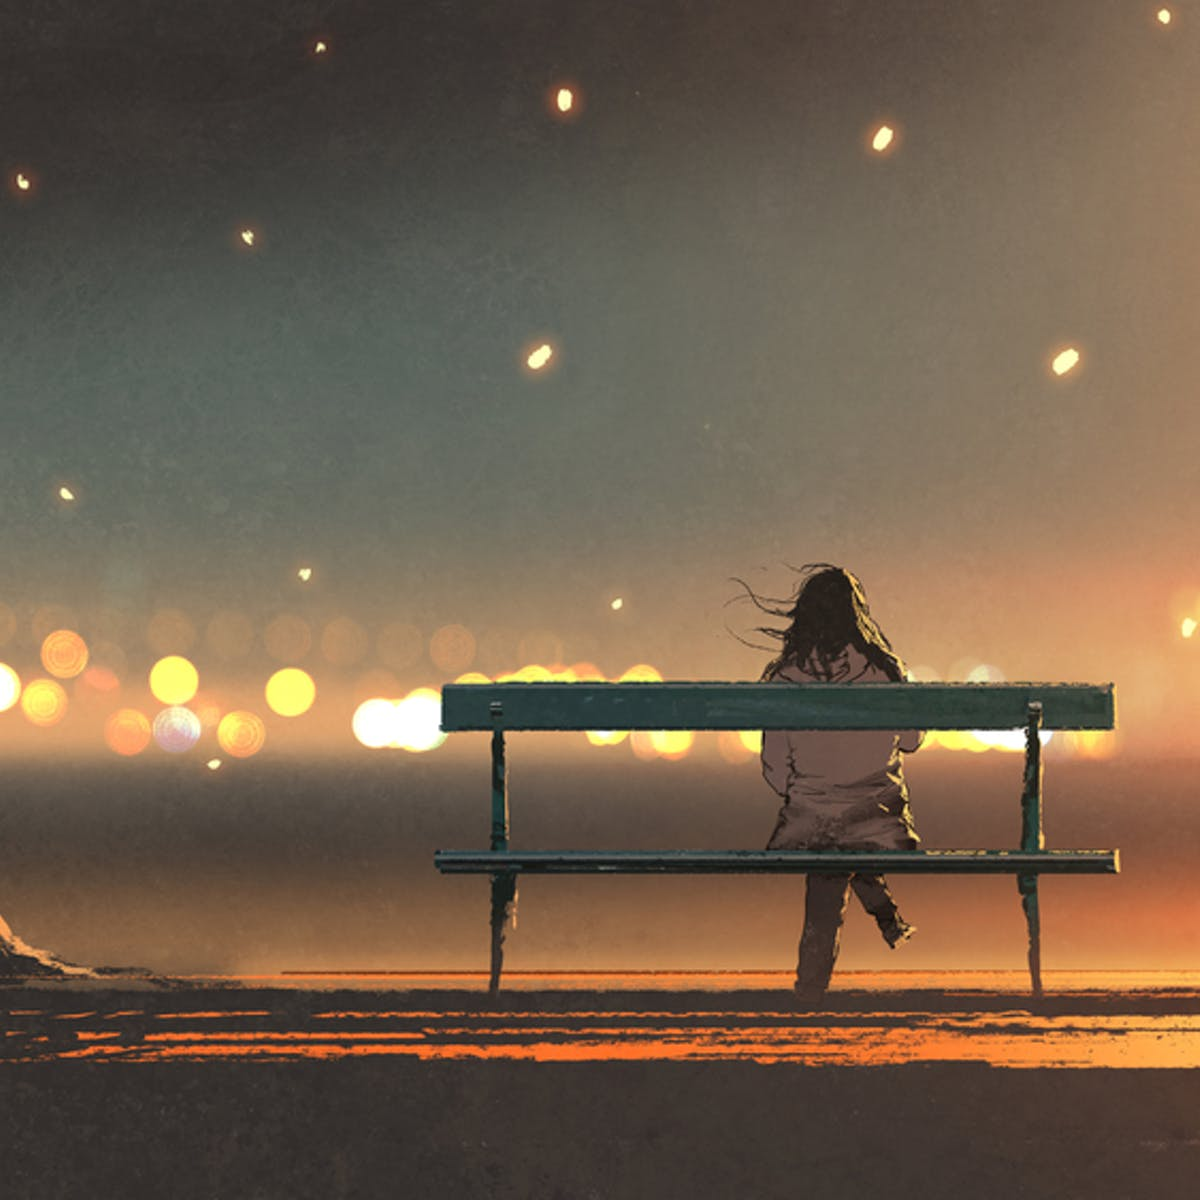 Loneliness is contagious – and here's how to beat it